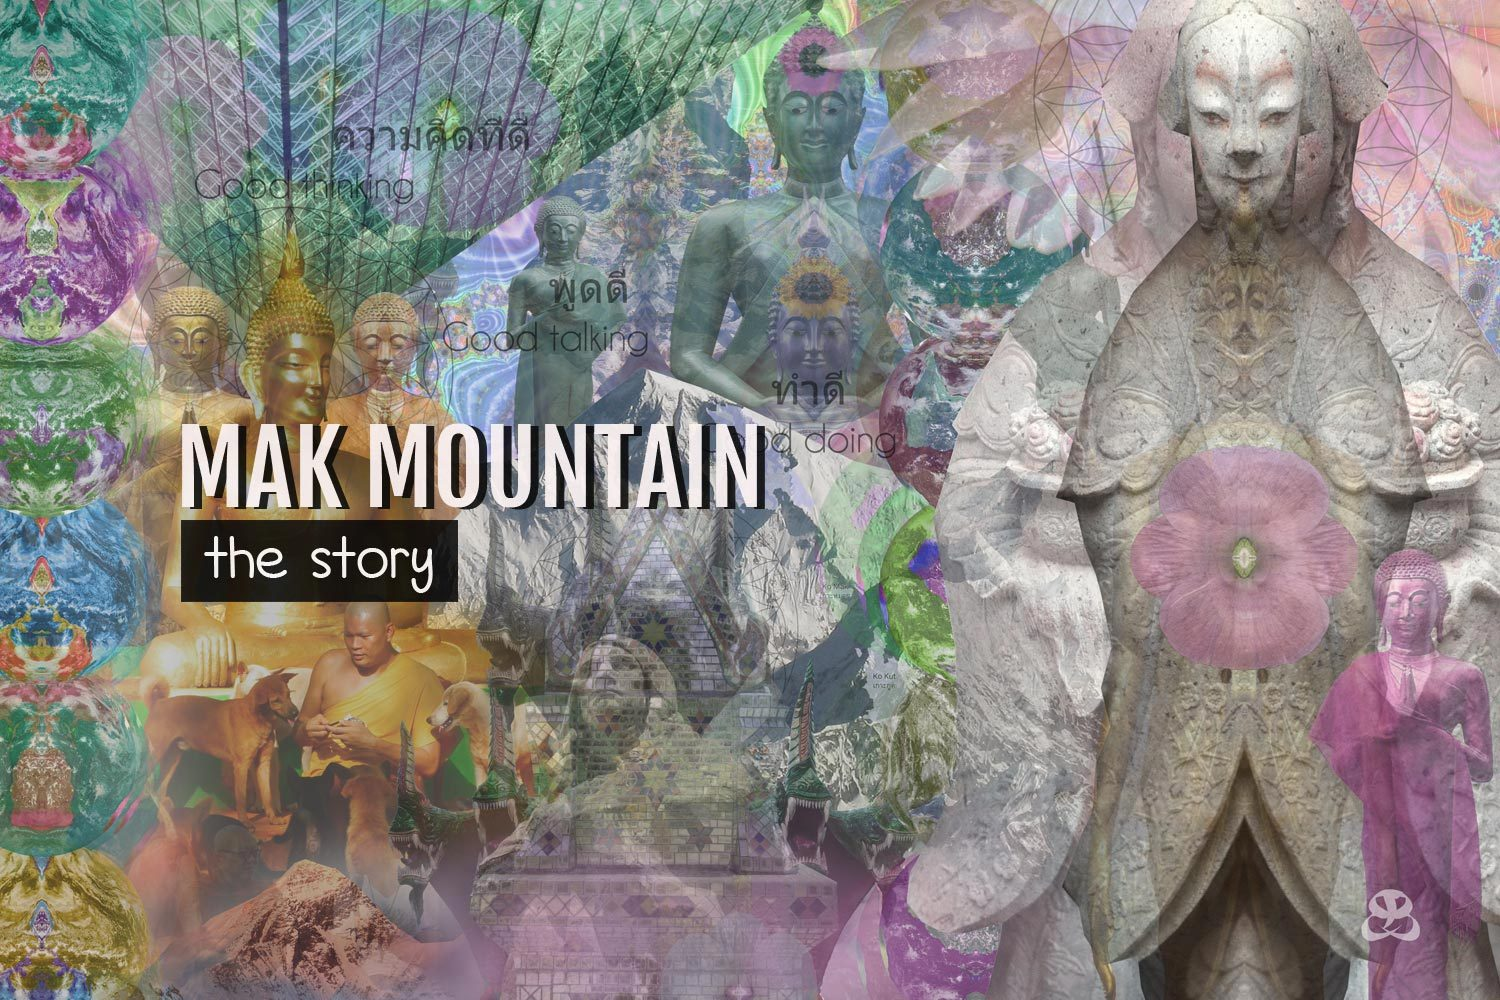 DIGITAL ART AMSTERDAM - Art Story MAK MOUNTAIN